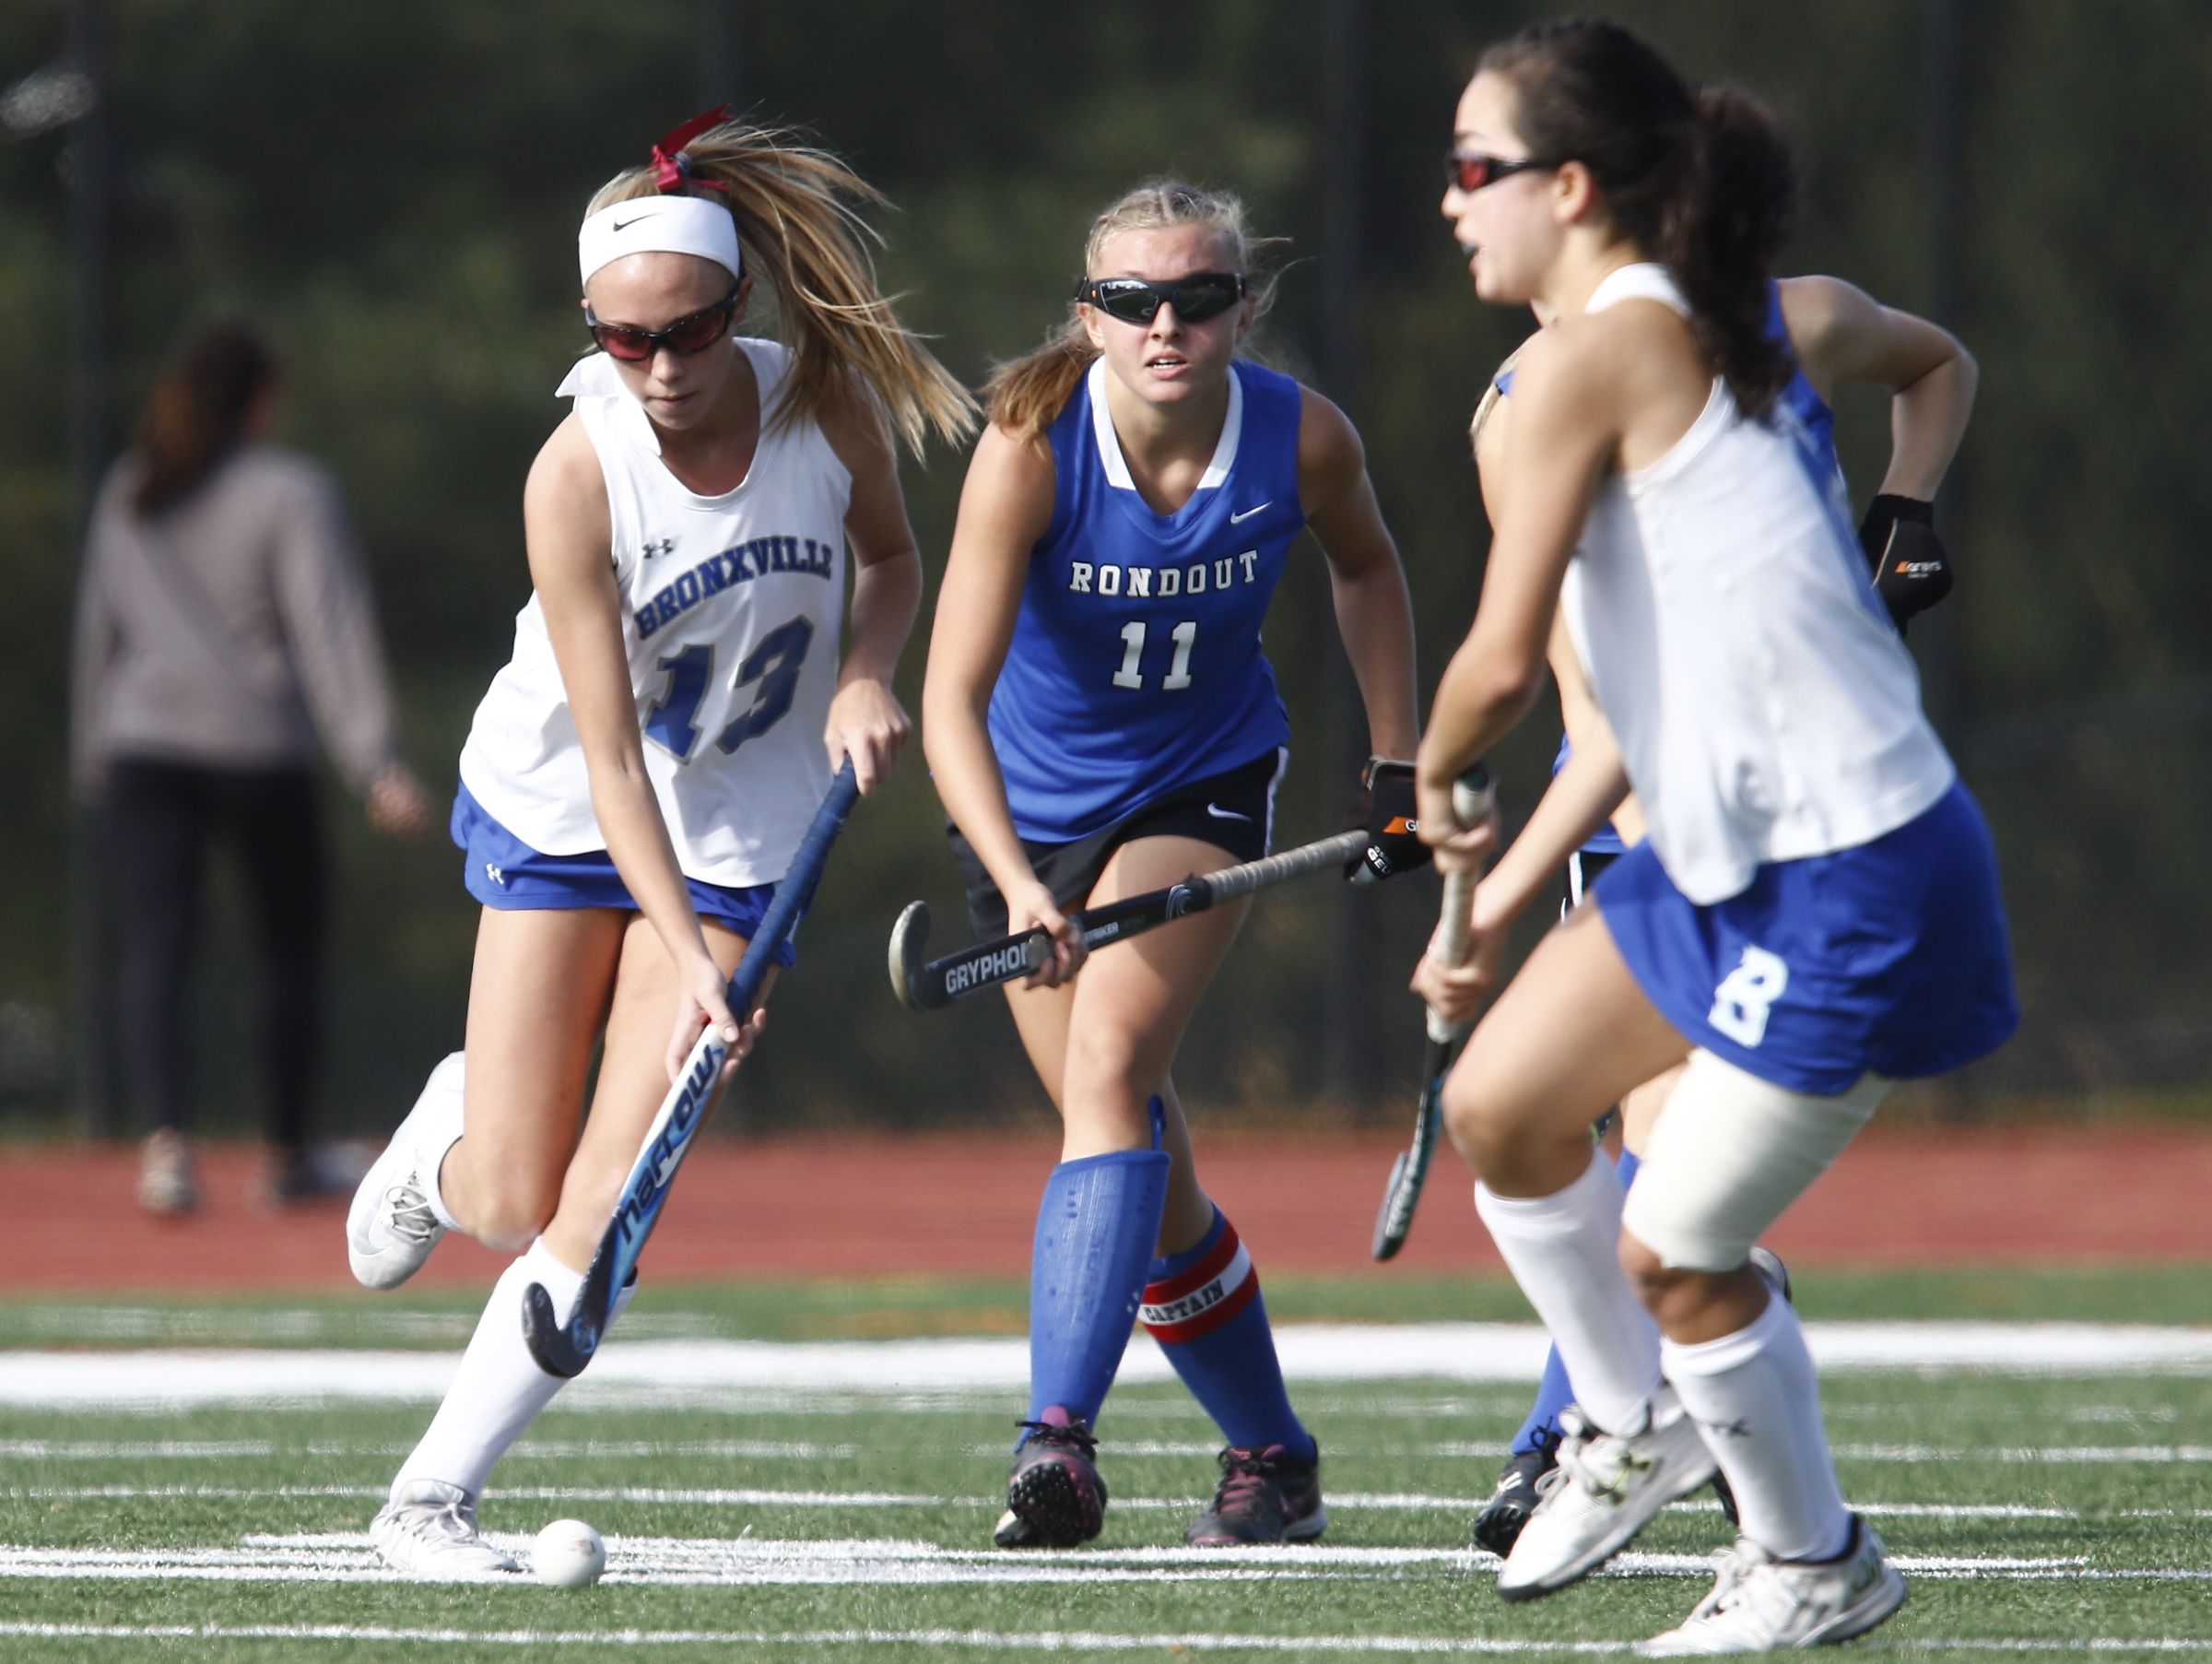 Bronxville Fiona Jones (13) works the ball around a Roundout Valley defender durubg their 2-0 win over Roundout Valley in the Class C regional championship field hockey game at Valhalla High School on Saturday, November 5, 2016.